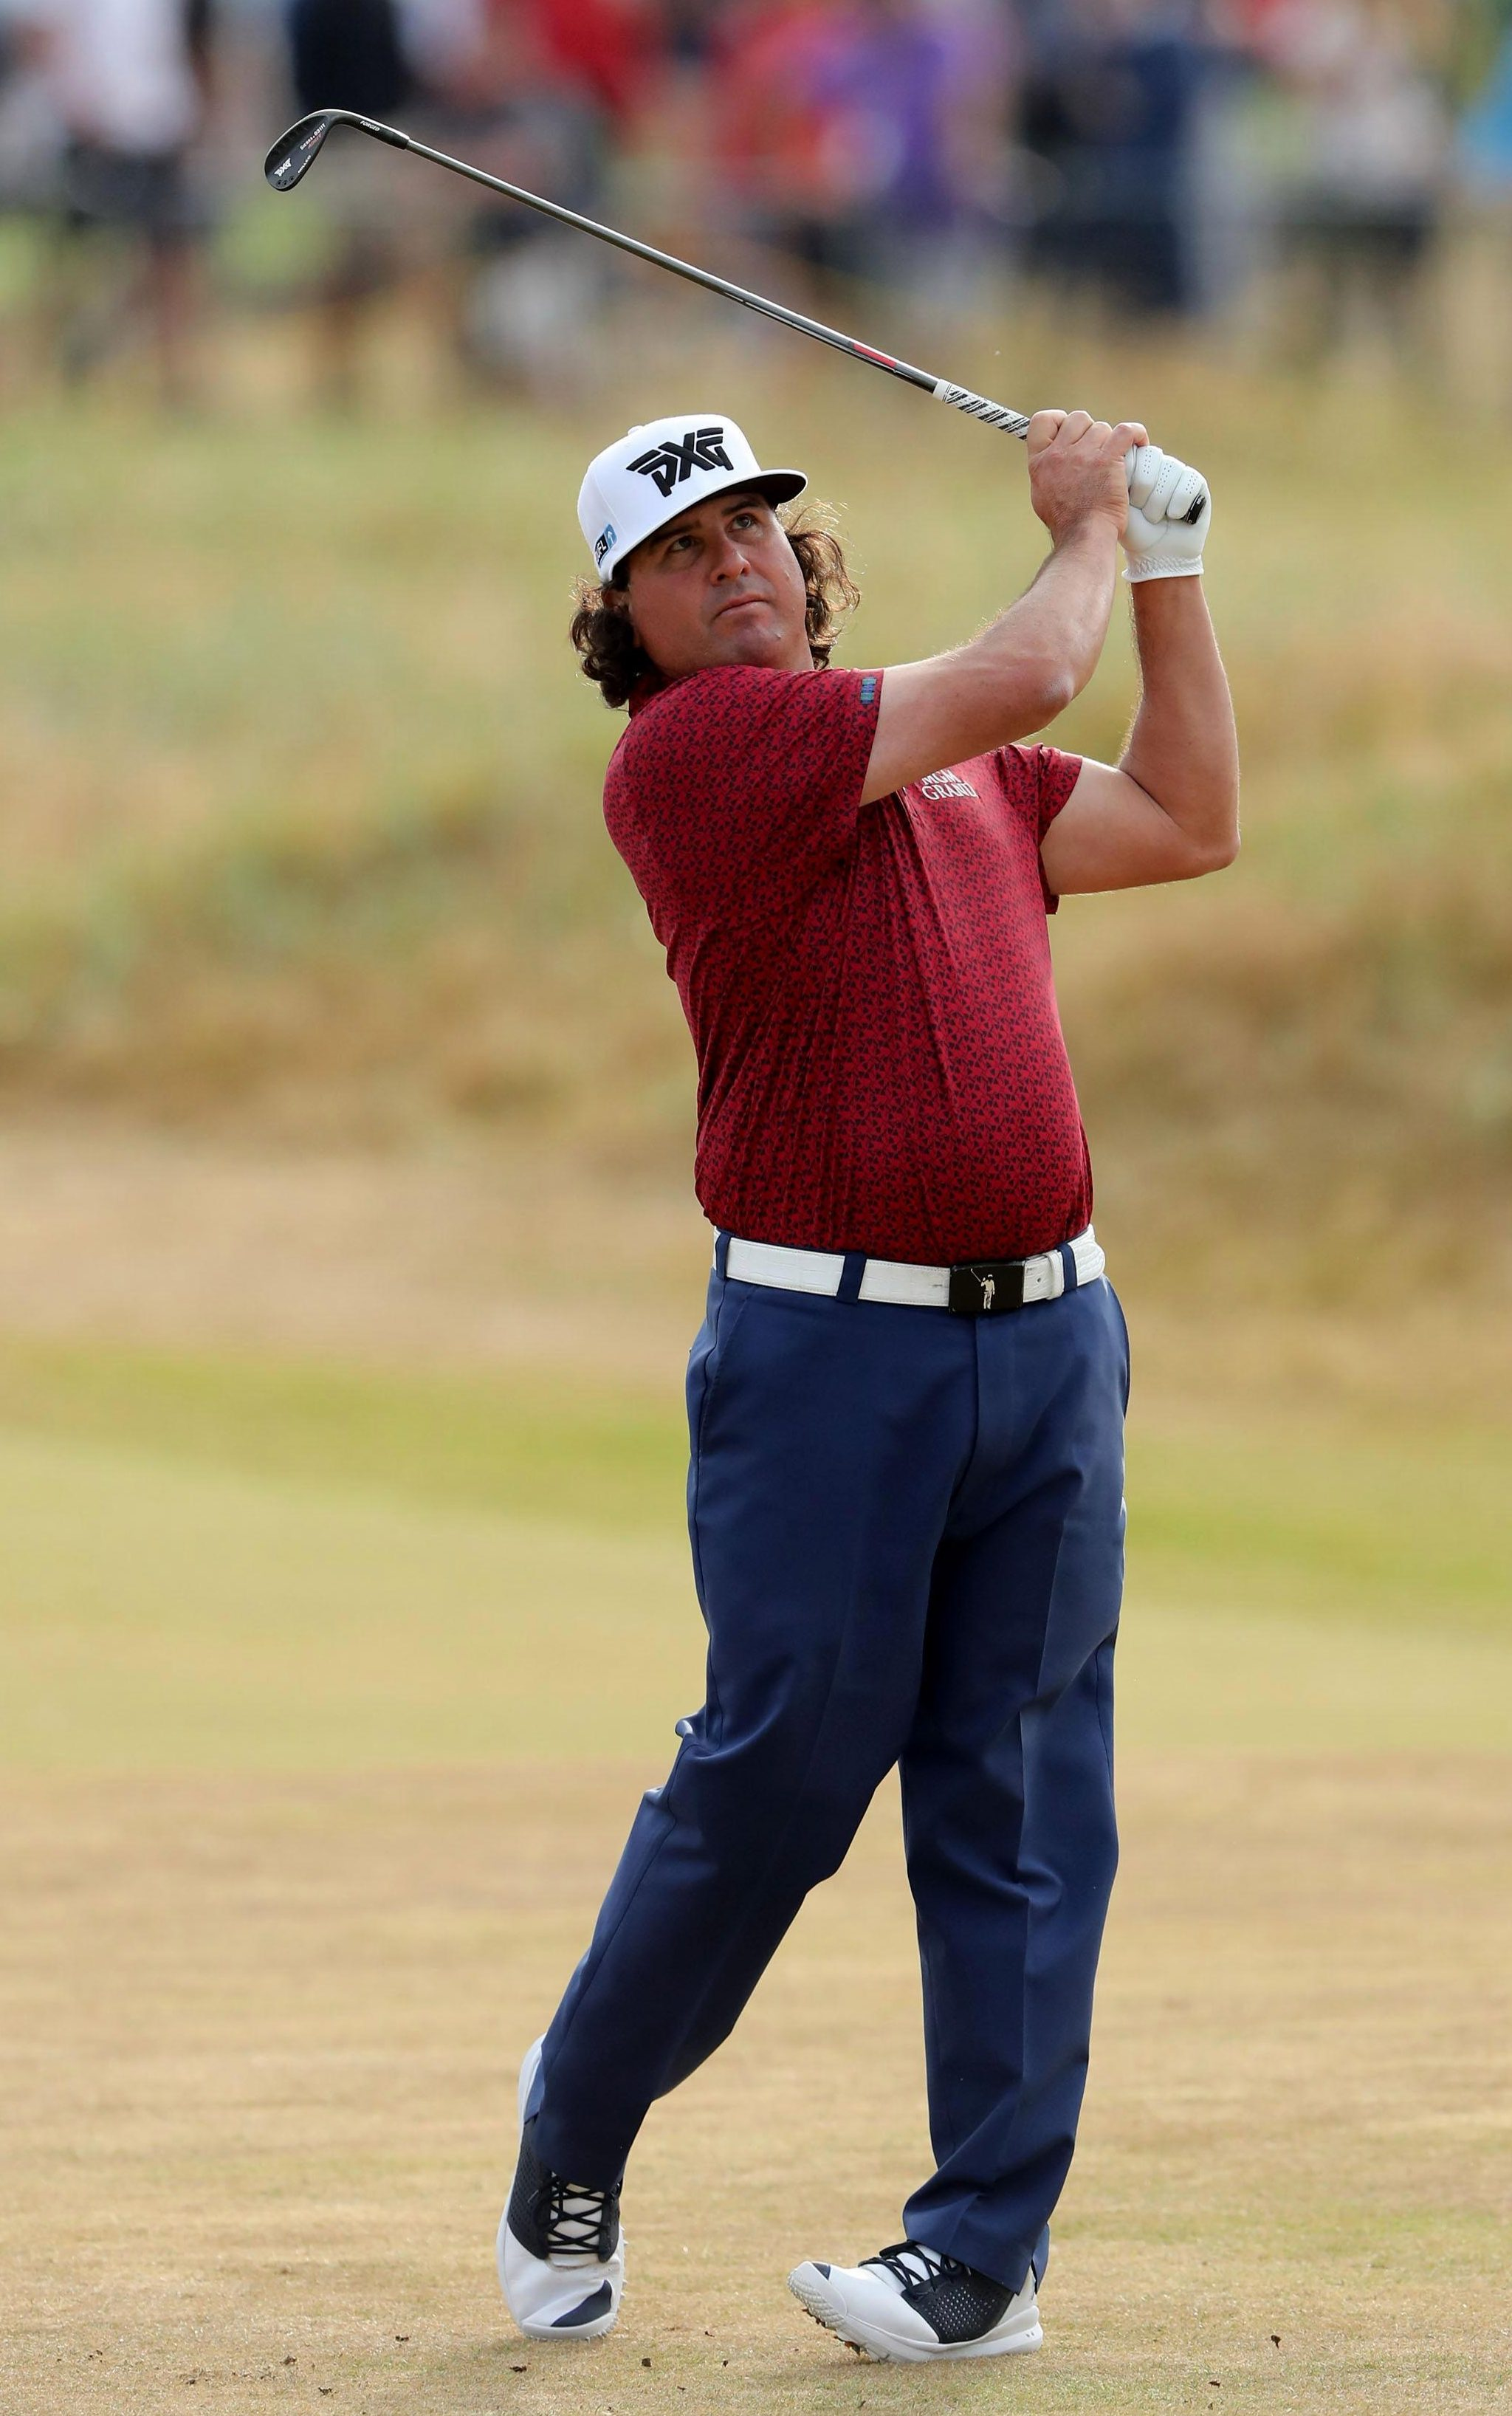 Yank Pat Perez now seems out of the running for the Claret Jug at Carnoustie